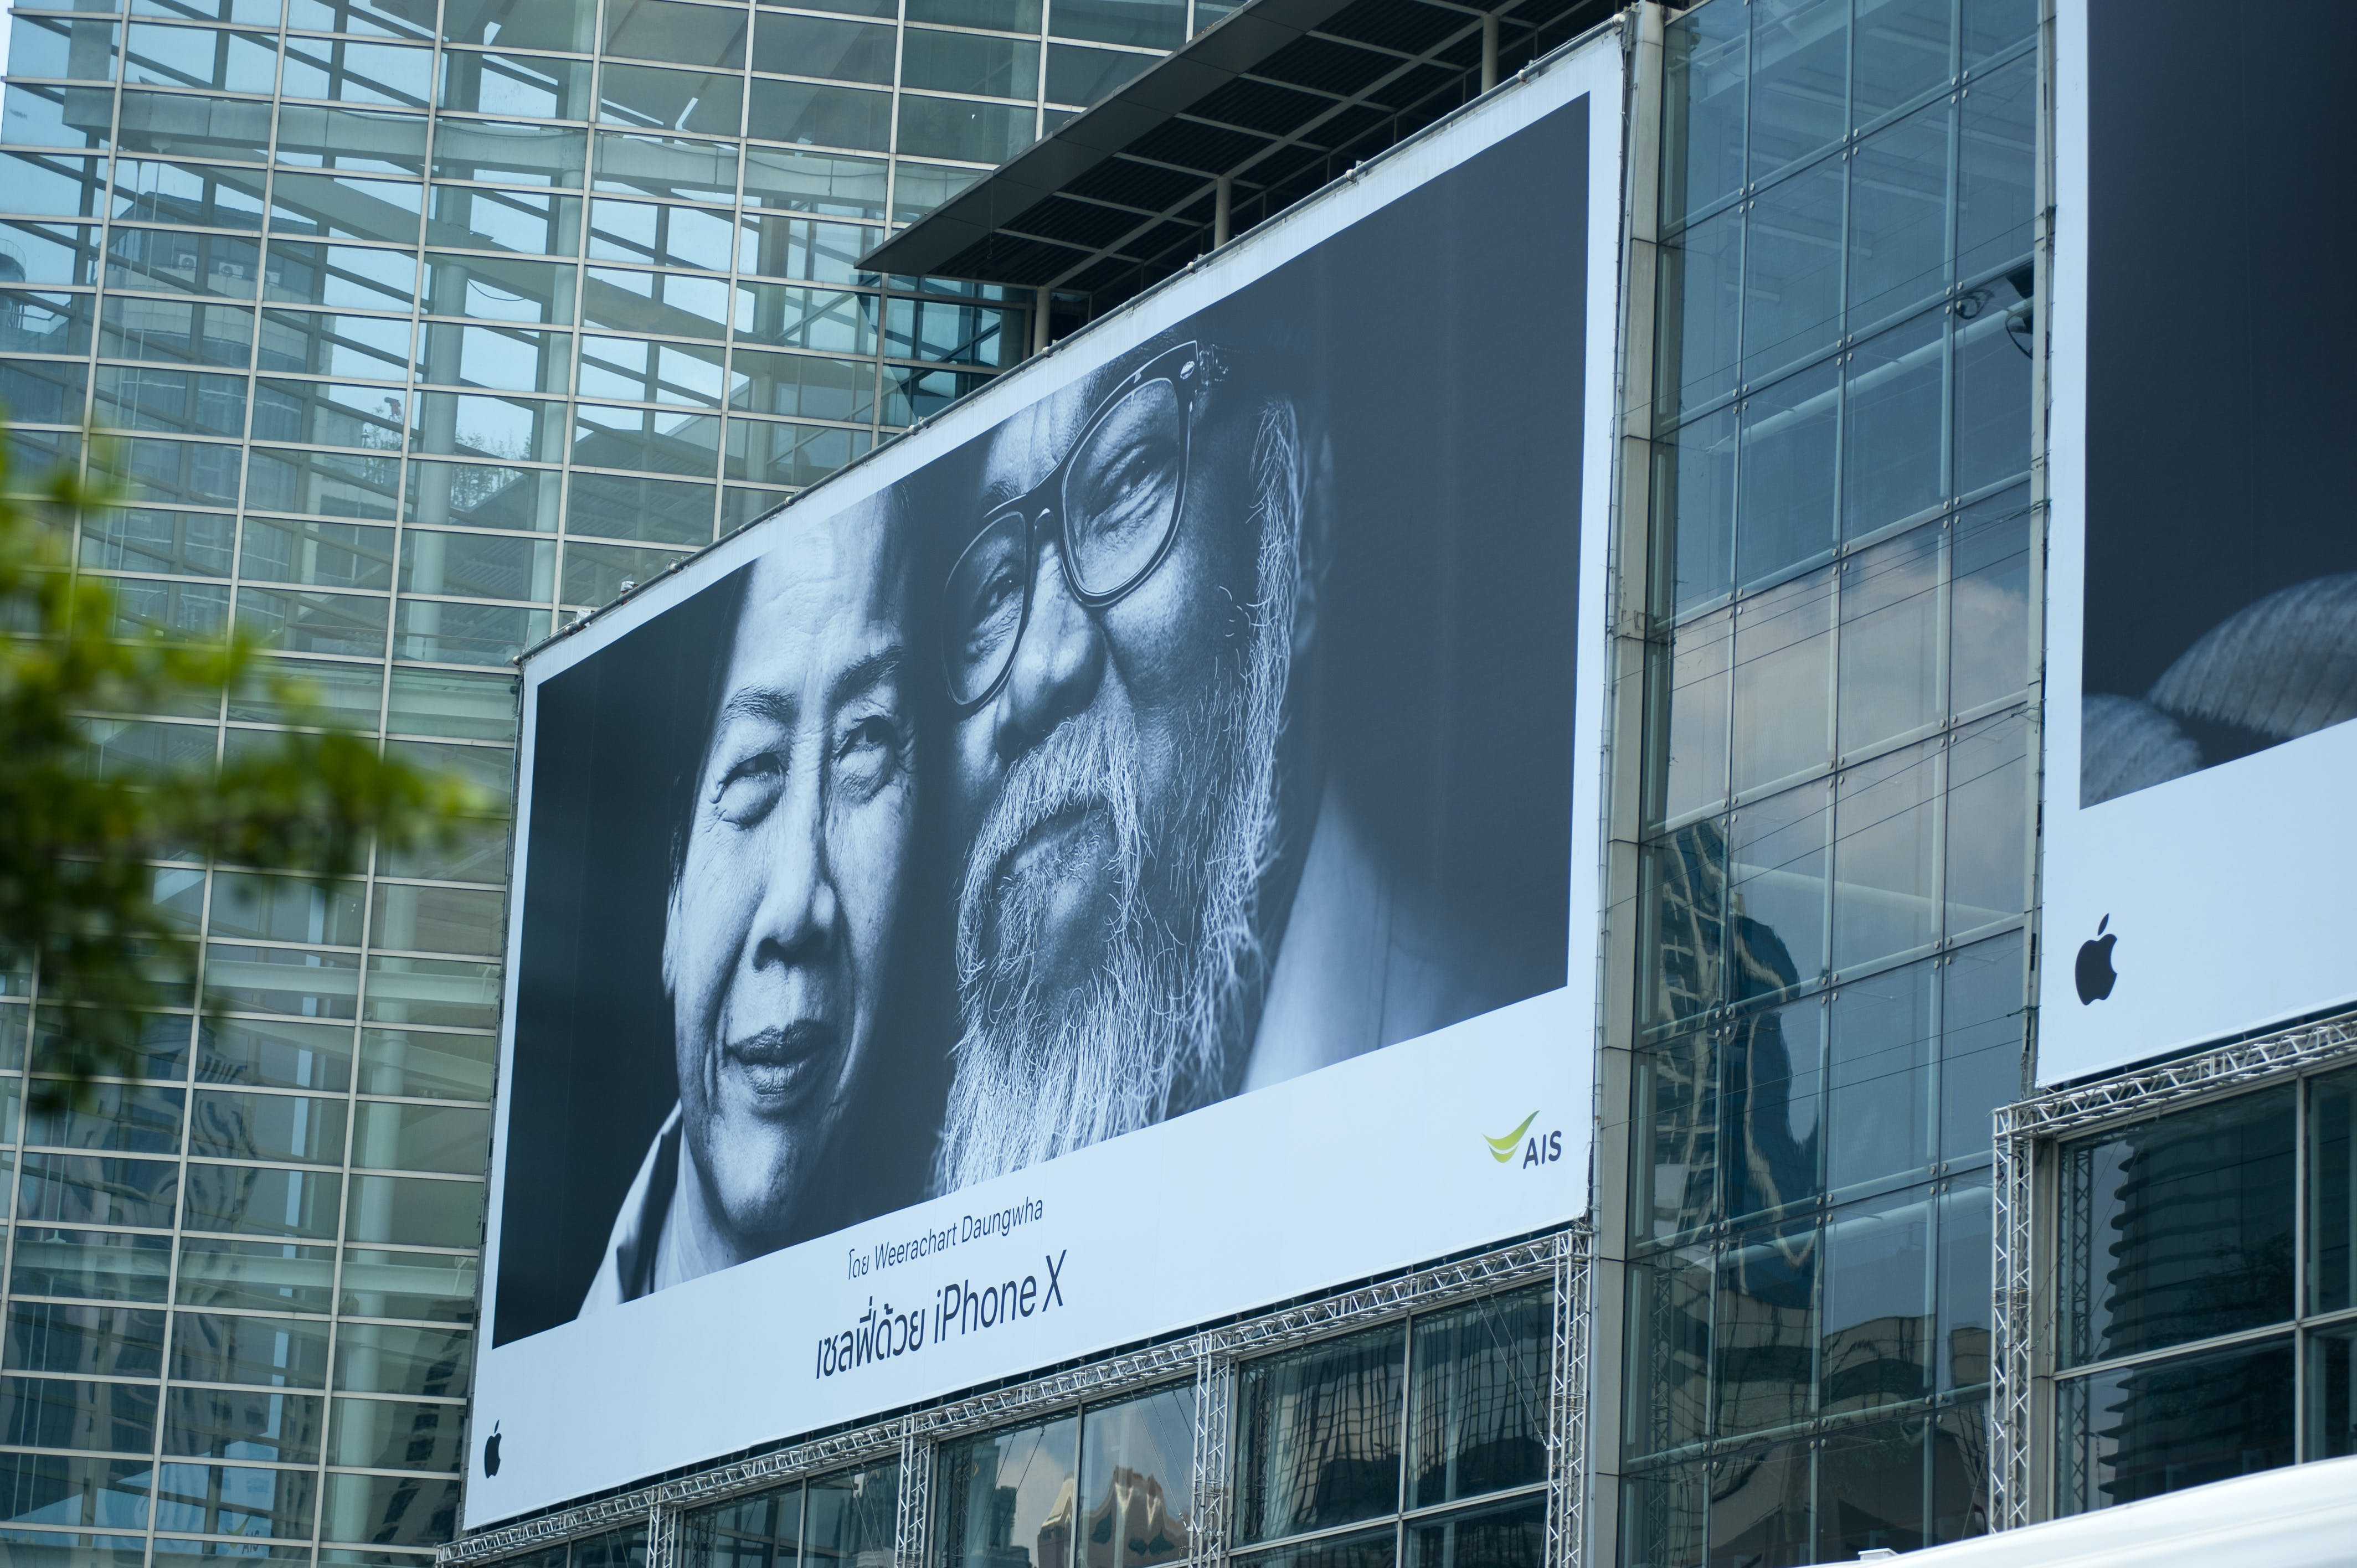 Man Beside Woman Billboard